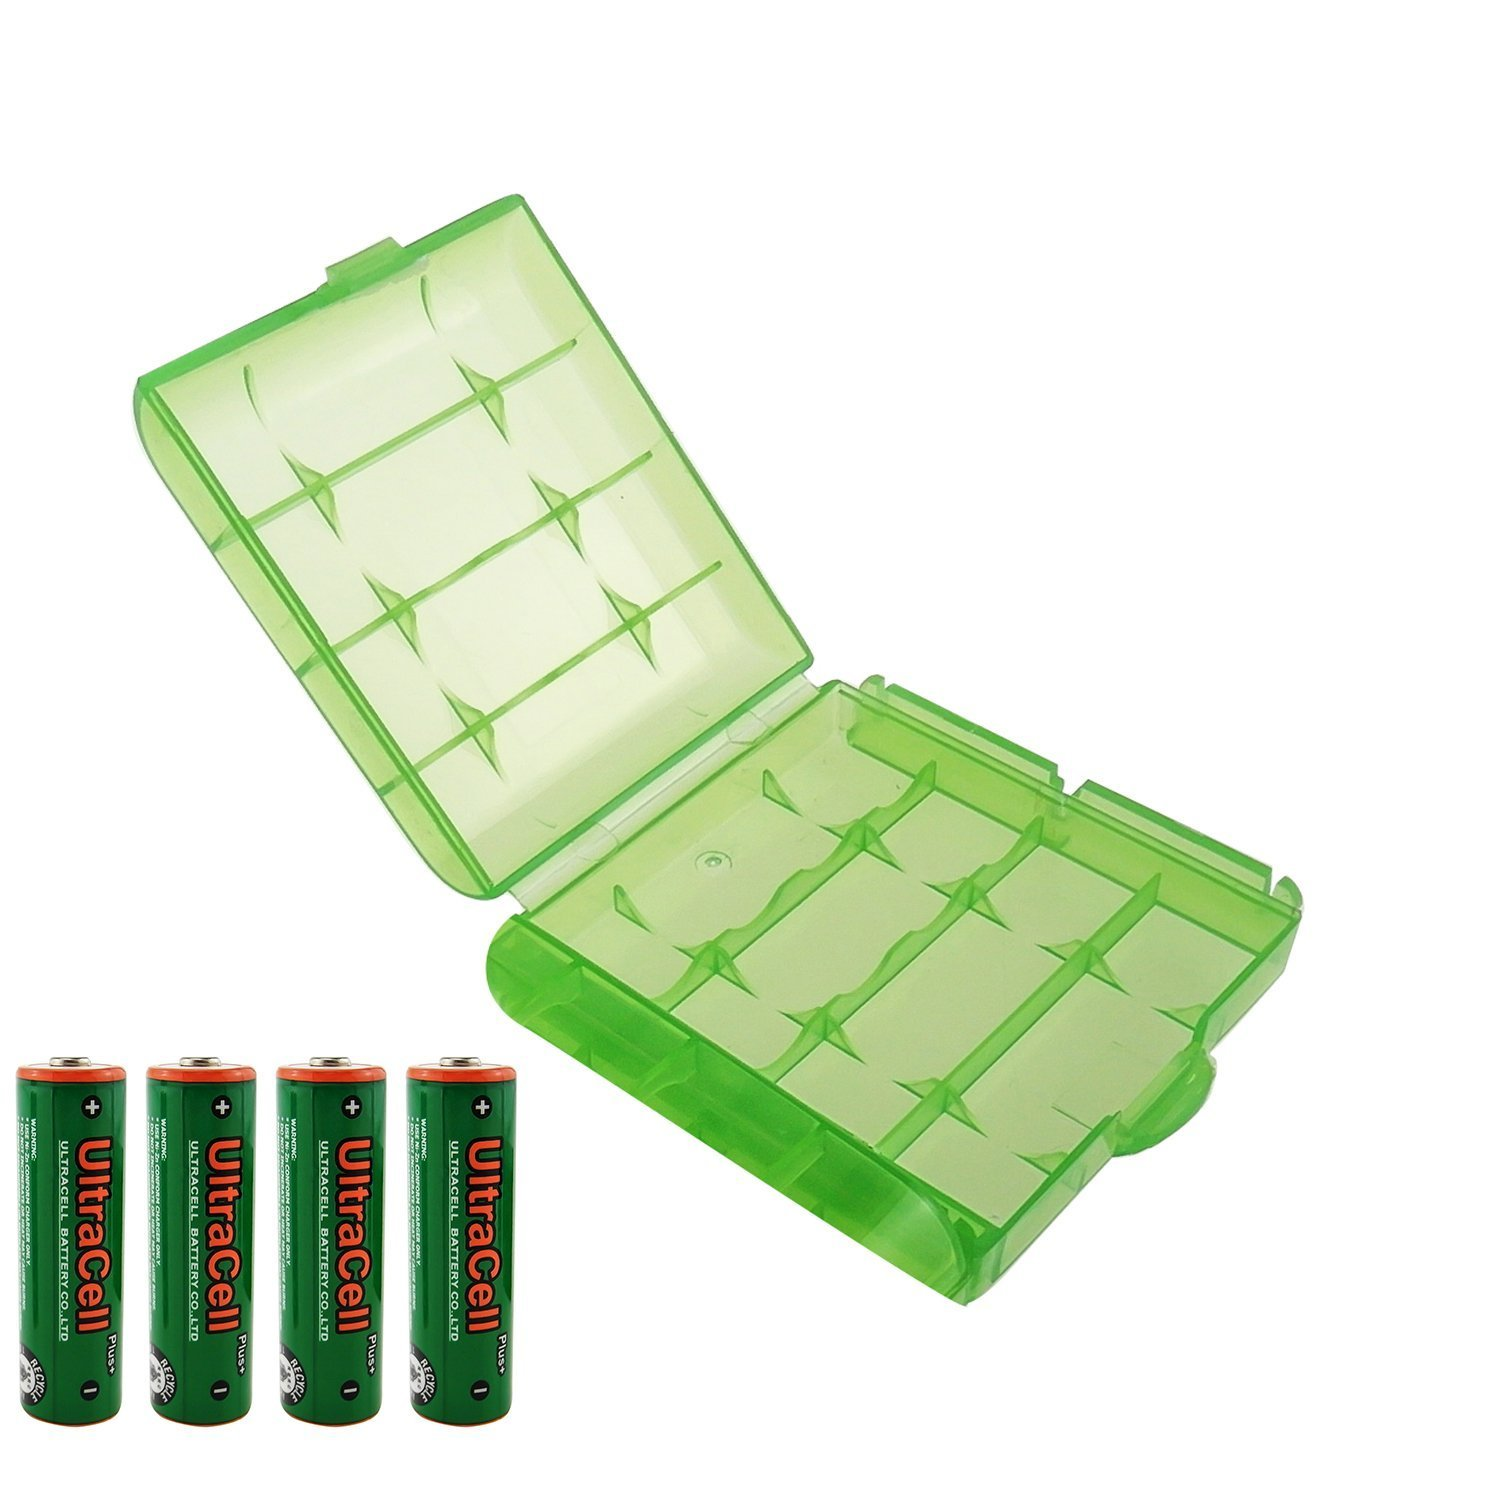 UltraCell Plus NiZn 1.6v AA - 2800mWh High Voltage Rechargeable Batteries With Battery Storage Box (Combo for 4pcs AA + 1pcs Green Battery Box) LT-LOK0024